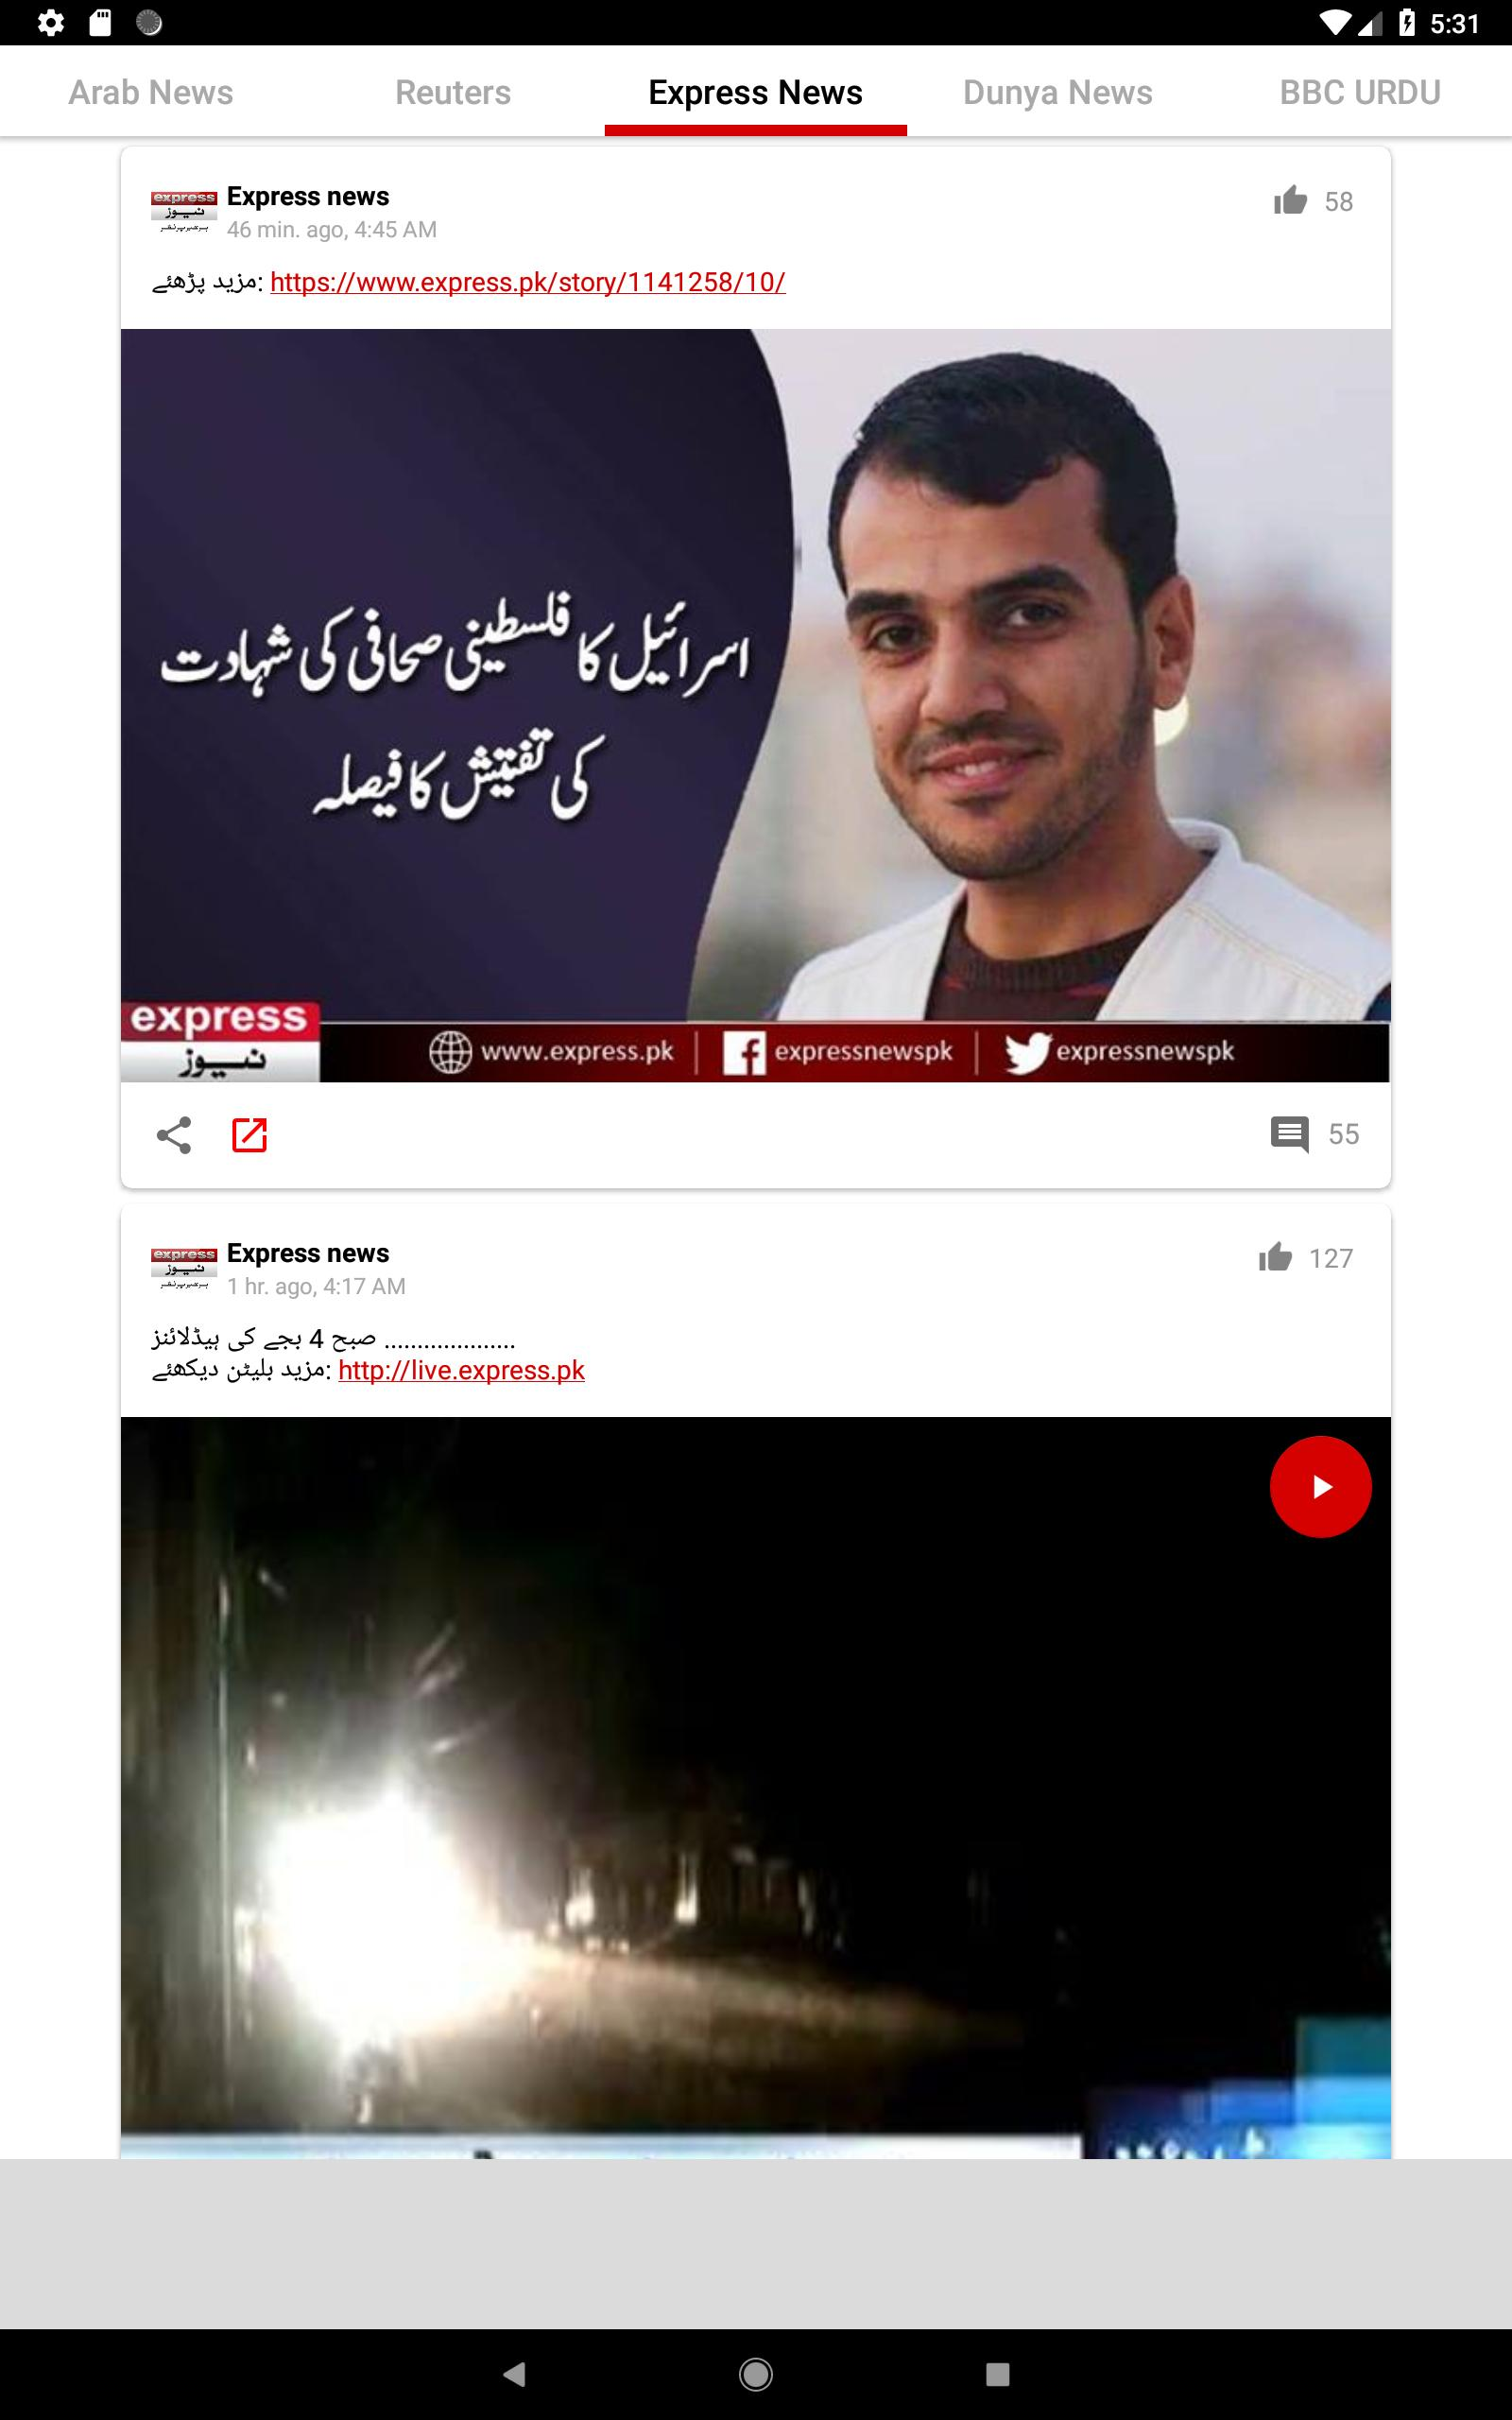 Pakistan News & Live TV - UNEWS for Android - APK Download